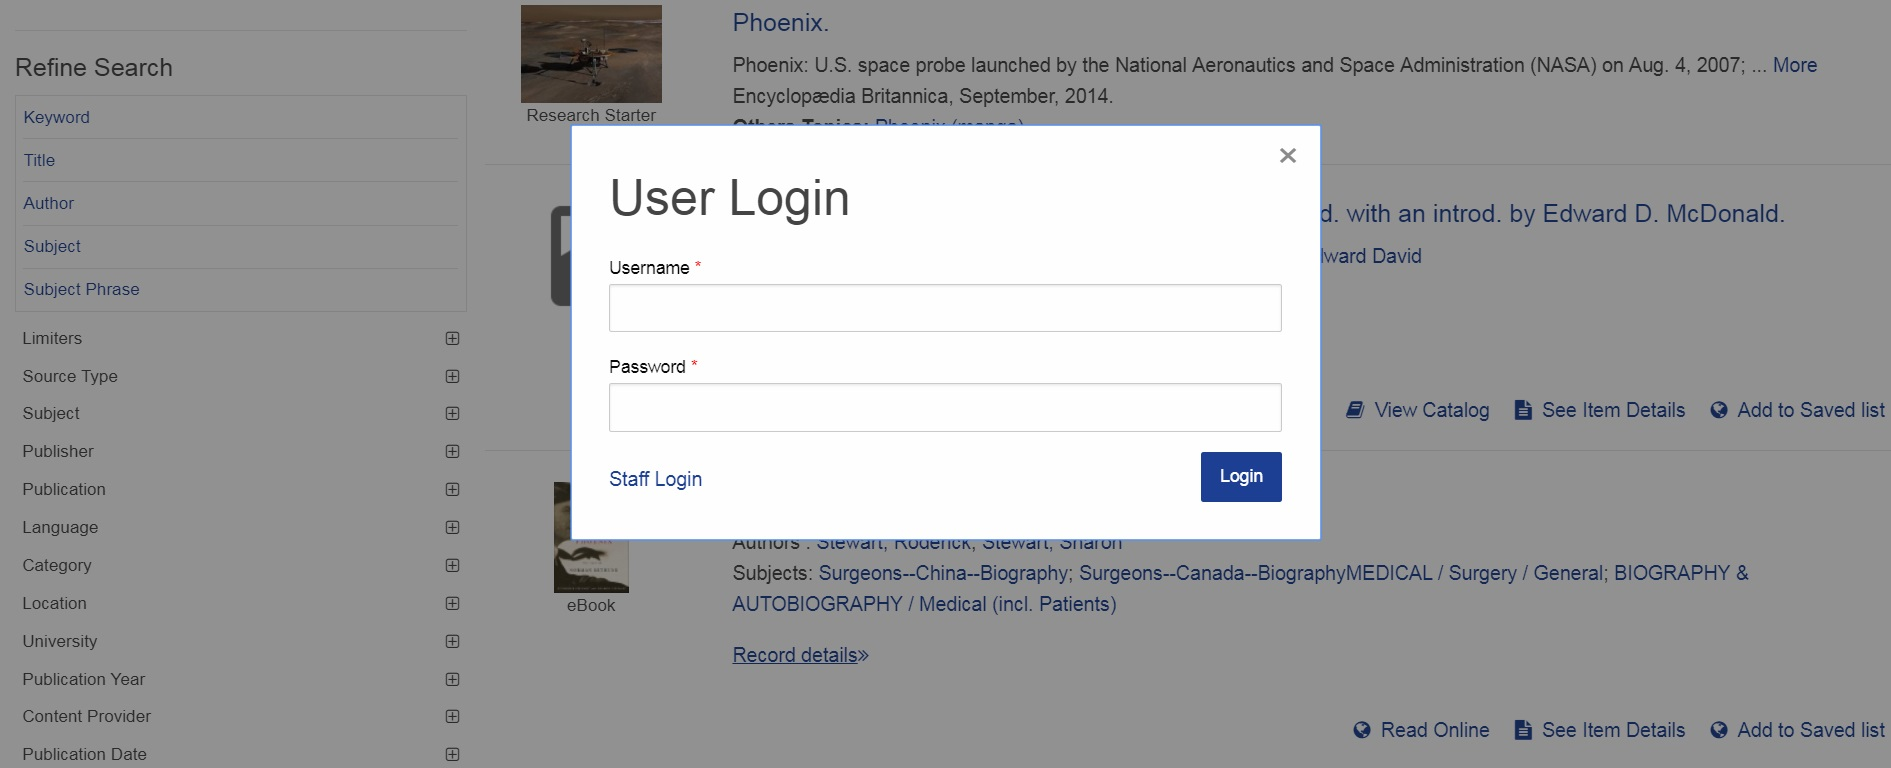 Screenshot of OneSearch with User Login window